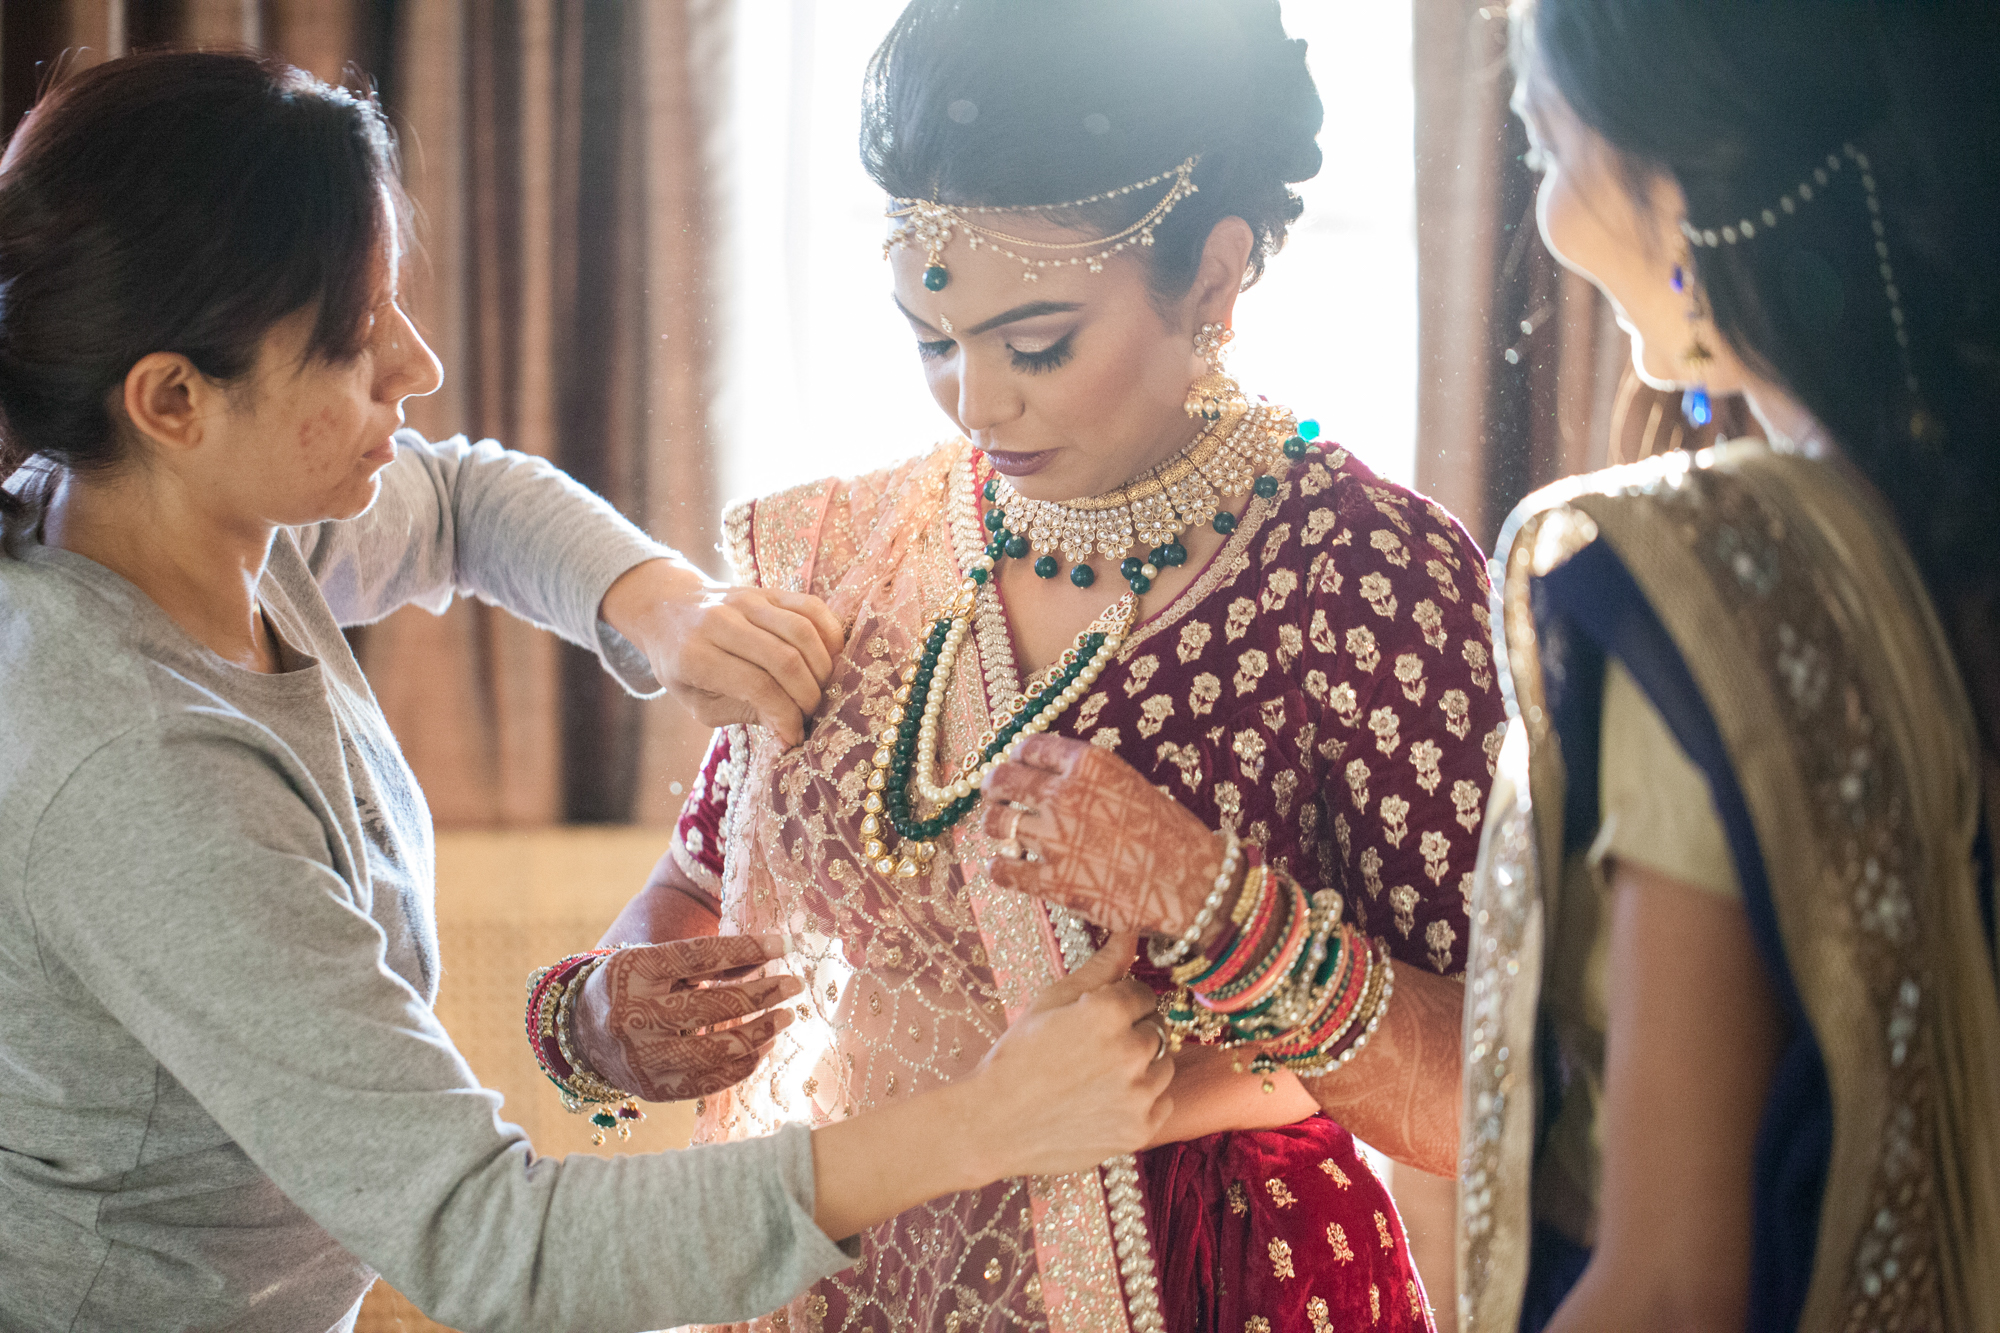 southeast-asian-bride-getting-ready.jpg